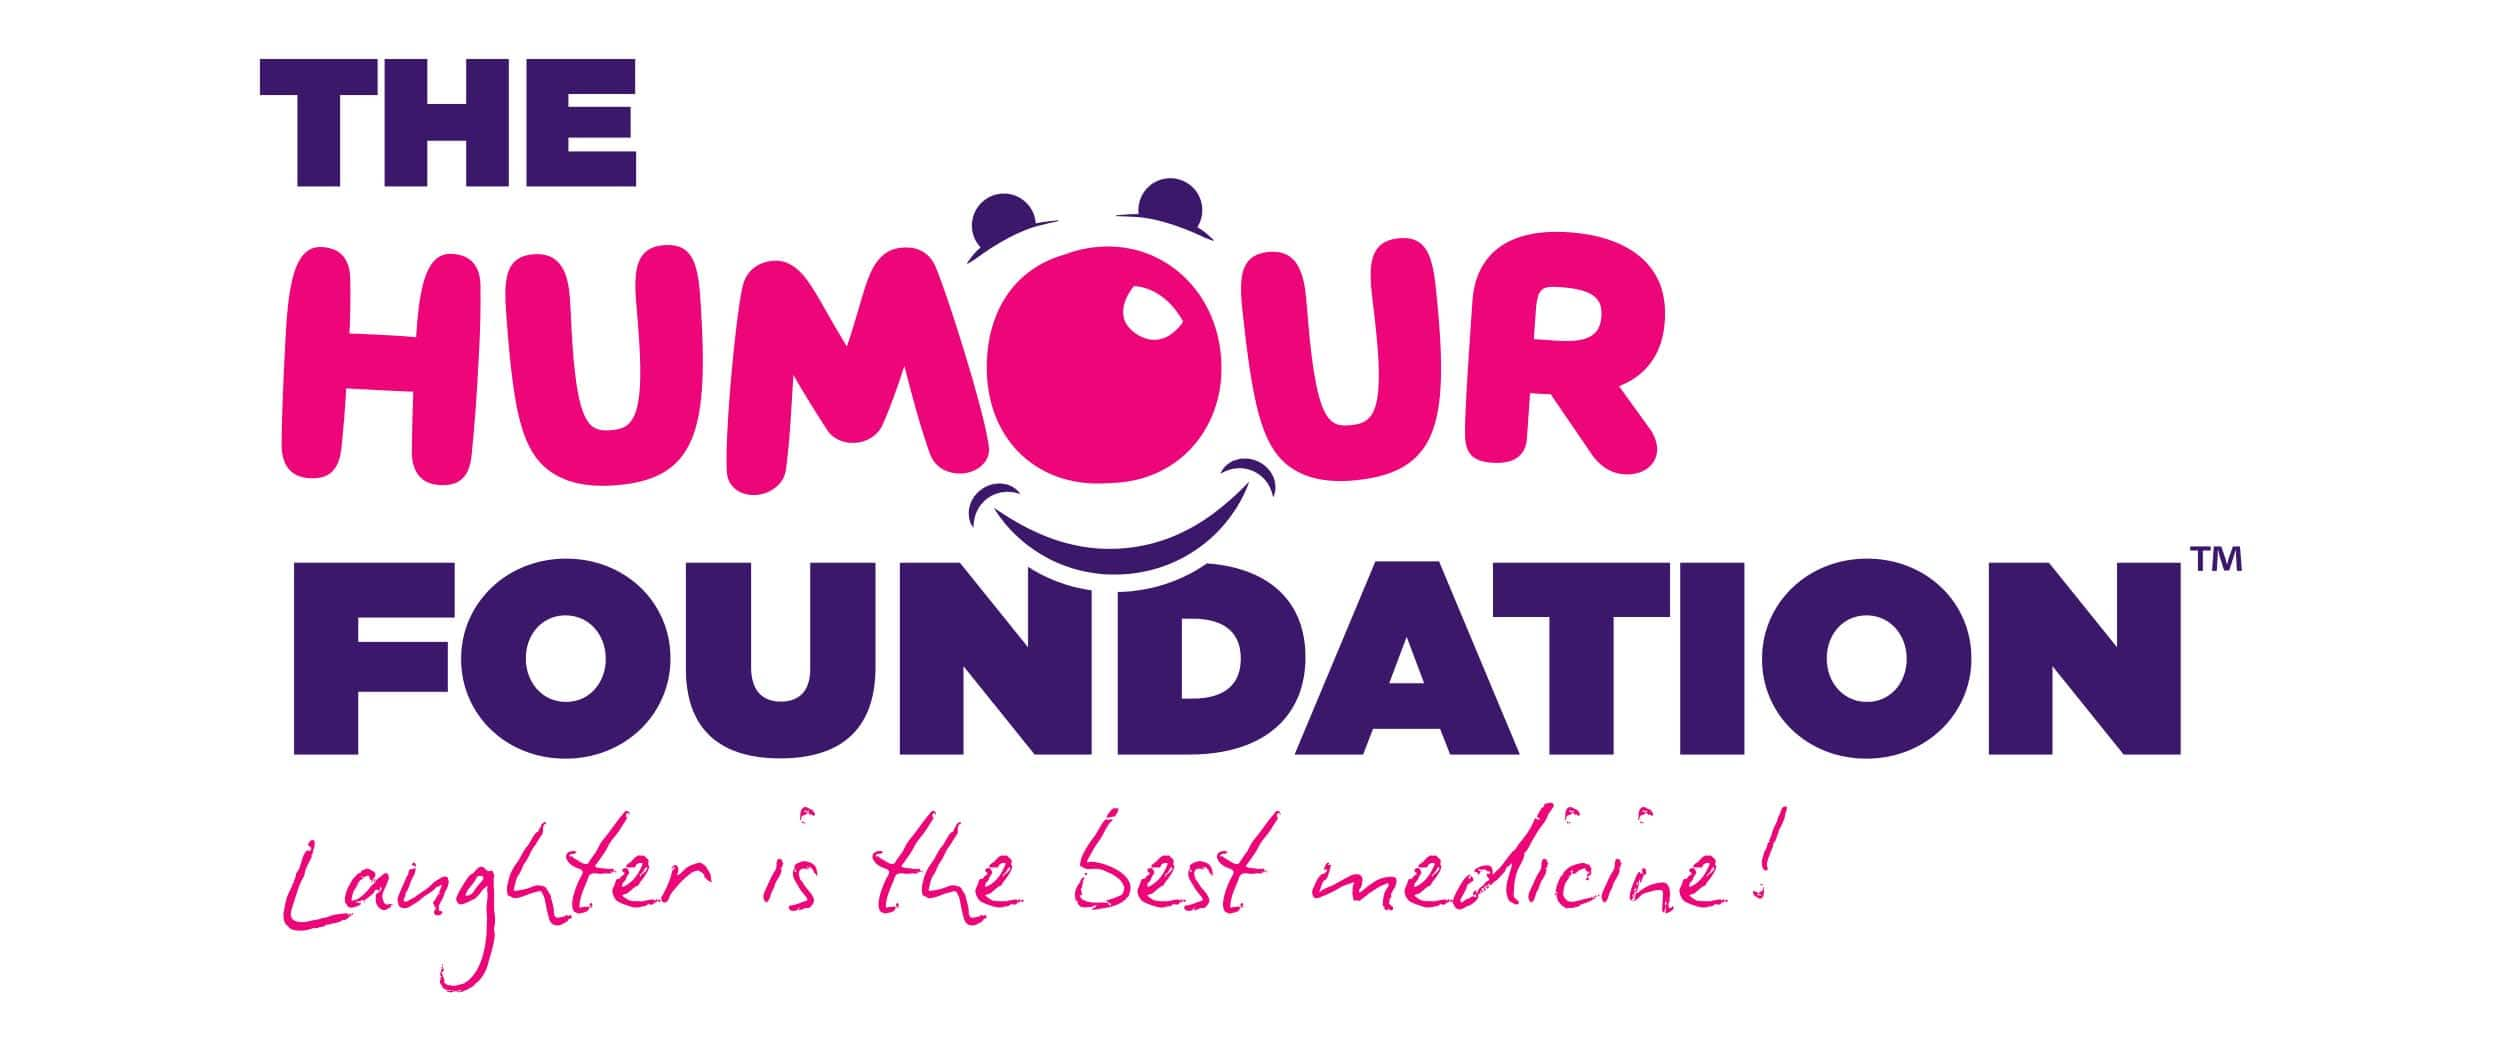 The Humour Foundation | Another DR Care Solutions Strategic Partnership